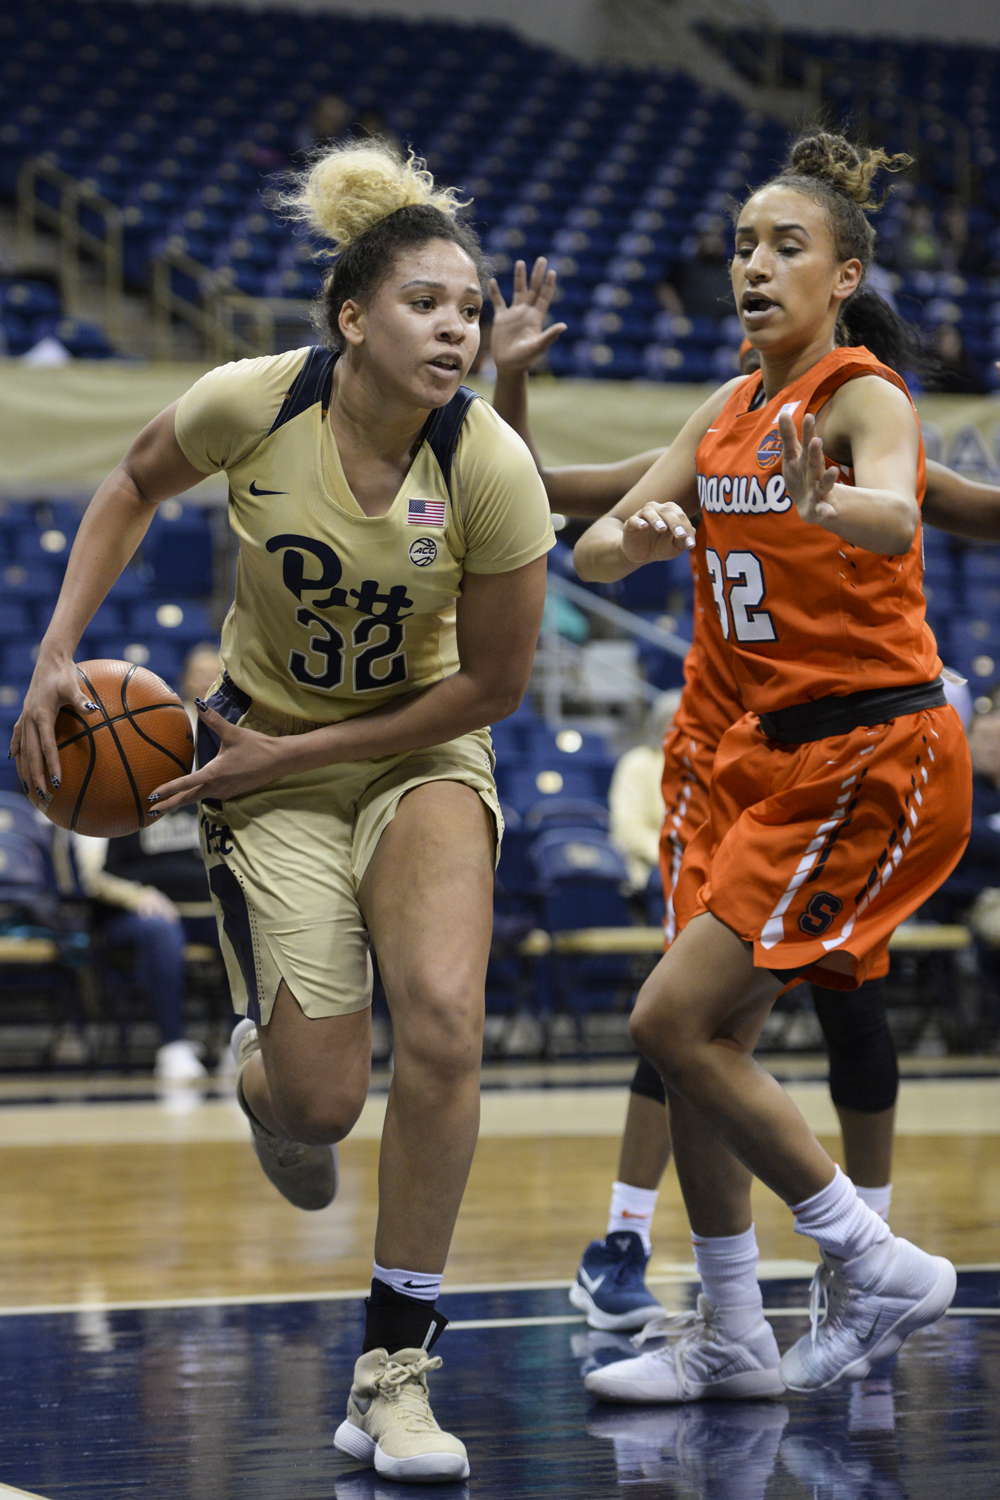 Then-junior Kalista Walters defends against Syracuse in a February game at the Petersen Events Center.